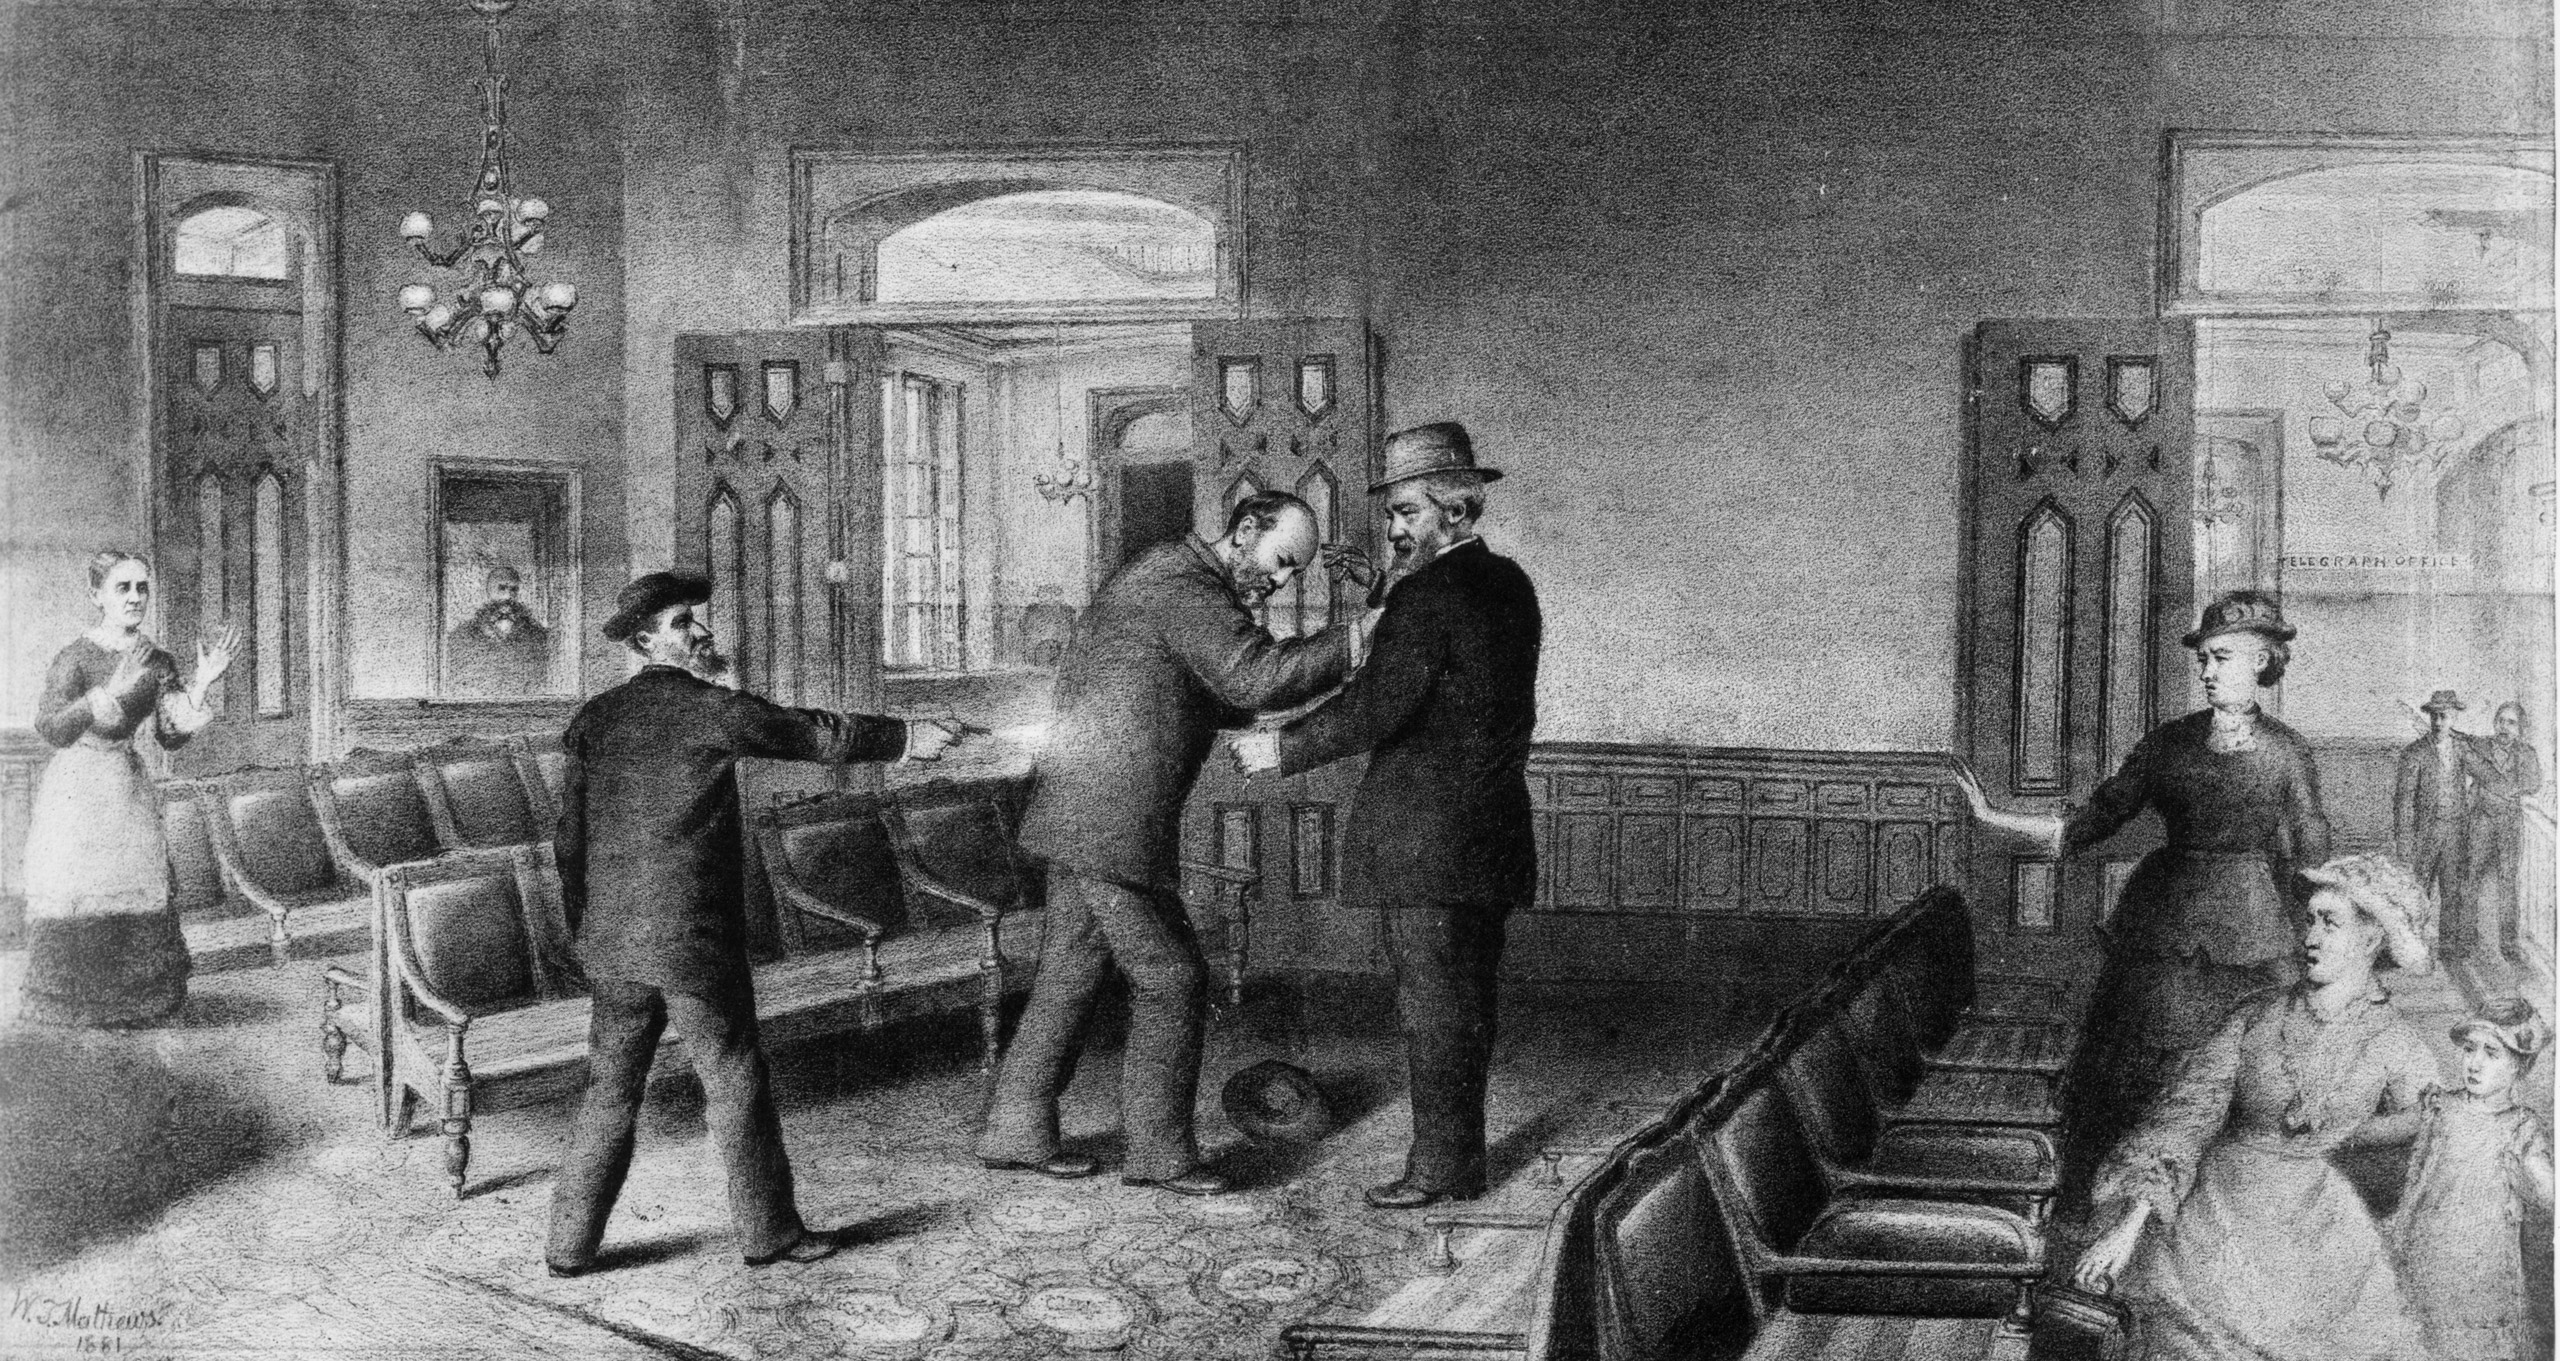 Charles Jules Guiteau, a disillusioned office seeker shoots US president James Garfield in the back at the Baltimore and Potomac Railroad Depot, Washington, DC. Garfield finally died of his injuries on September 19th, 1881. Original Artist: By William T Mathews.